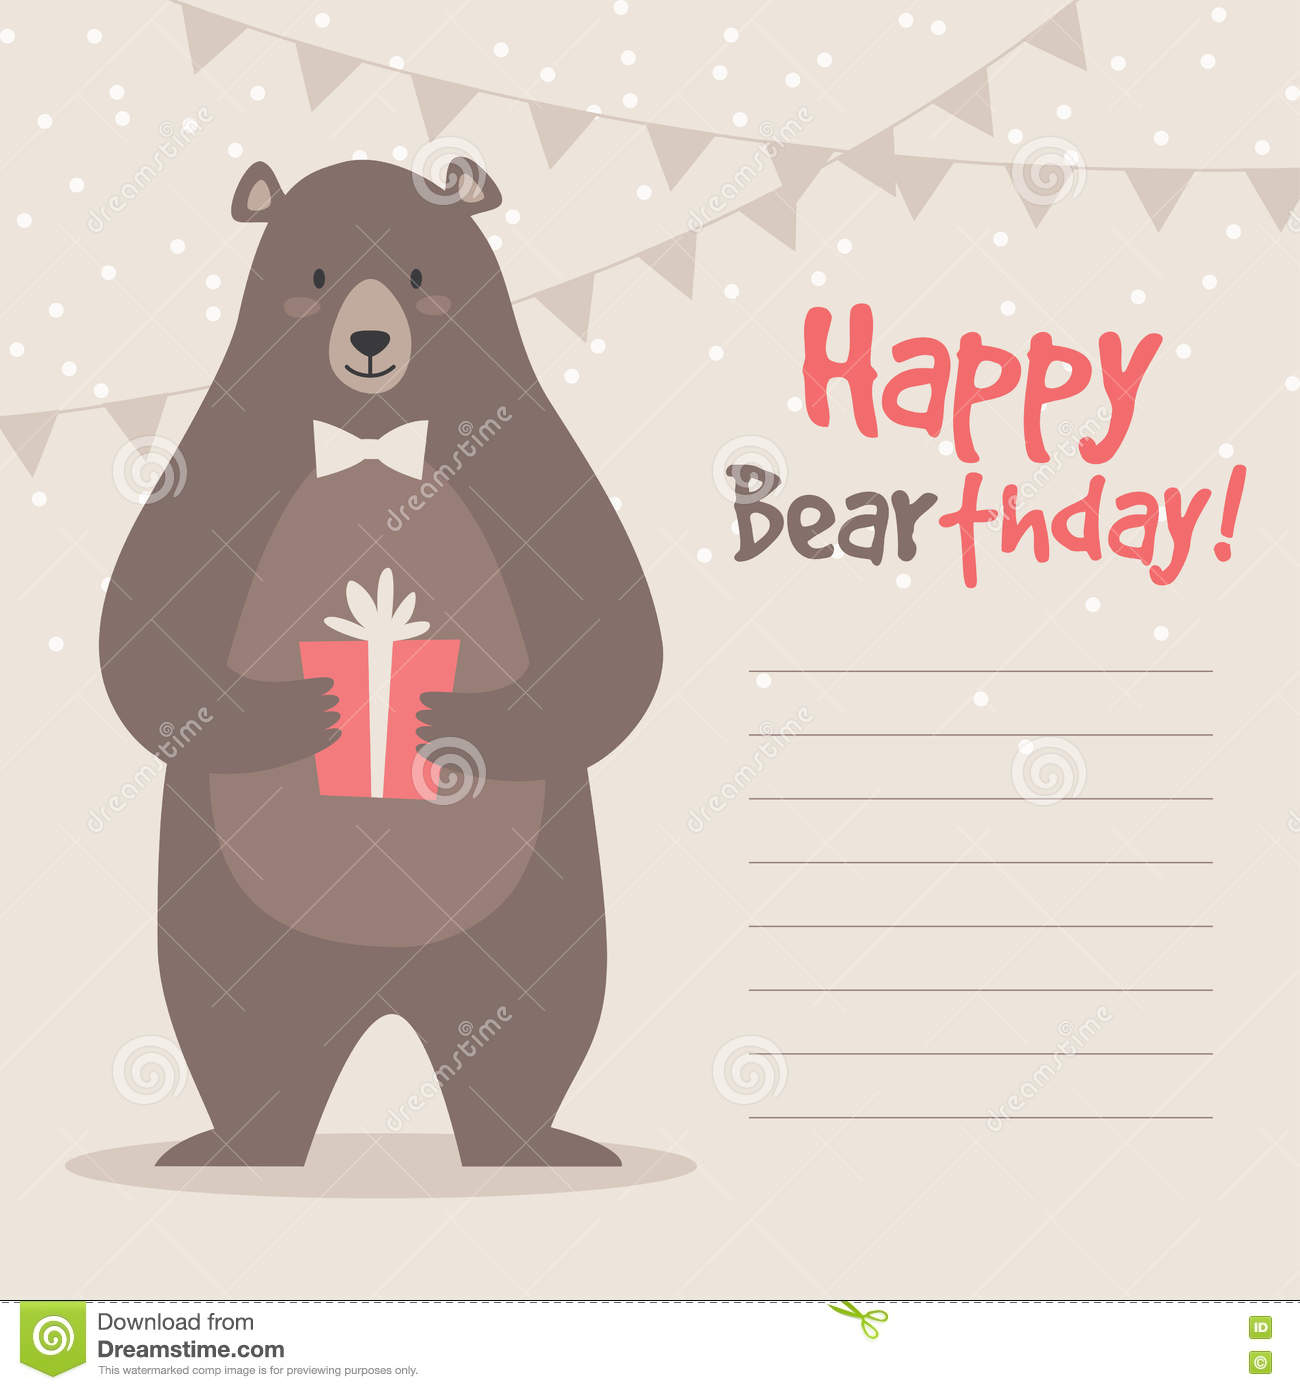 Birthday Greeting Card With Vector Illustration Of Cute Funny Bear Gift Box